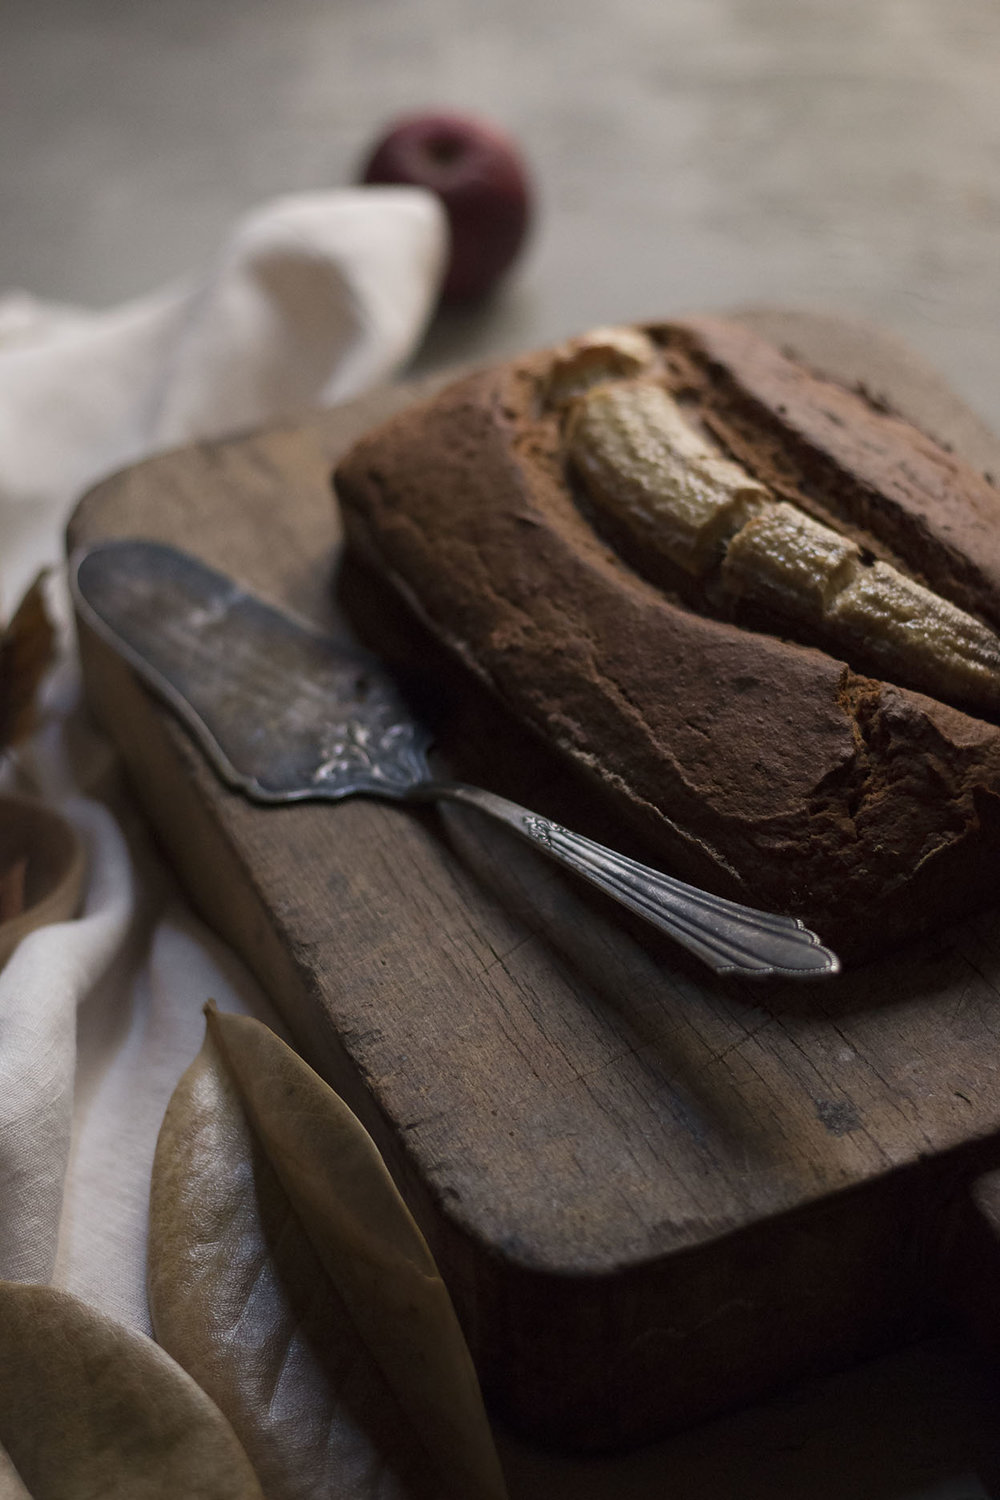 BANANA_BREAD-WEB_3770.jpg